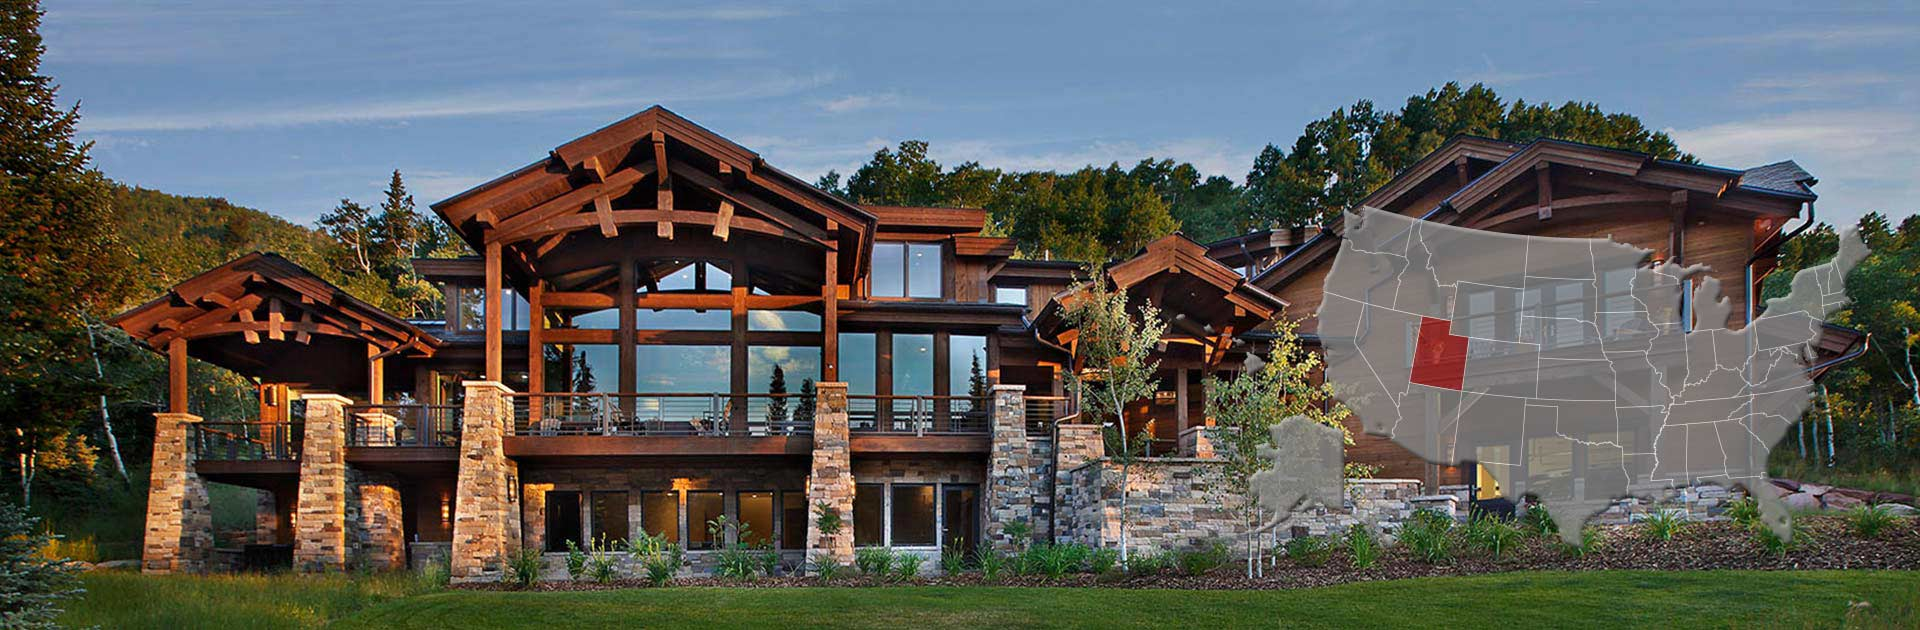 Utah Log & Timber Homes - Park City Home